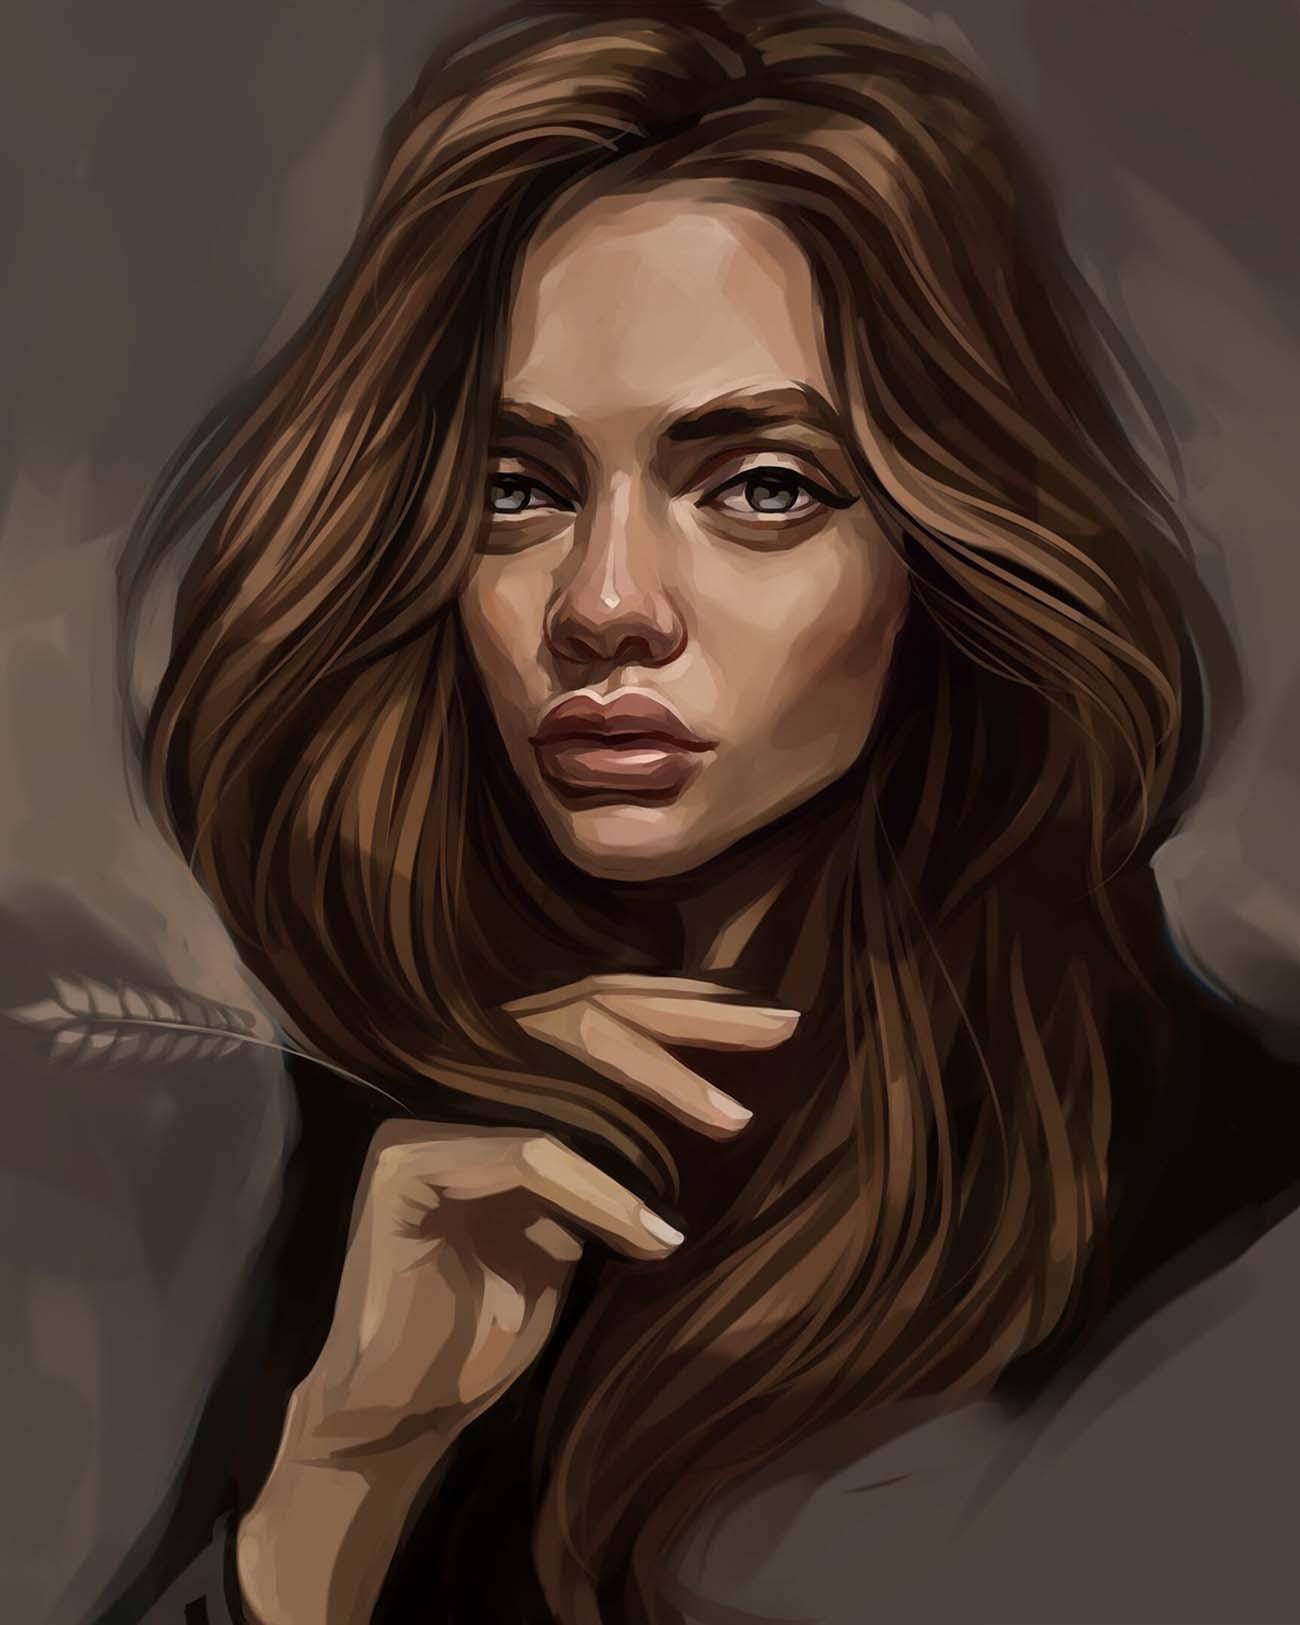 Still Dox | Paintable.cc Digital Painting Inspiration - Learn the Art of Digital Painting! #digitalpainting #digitalart